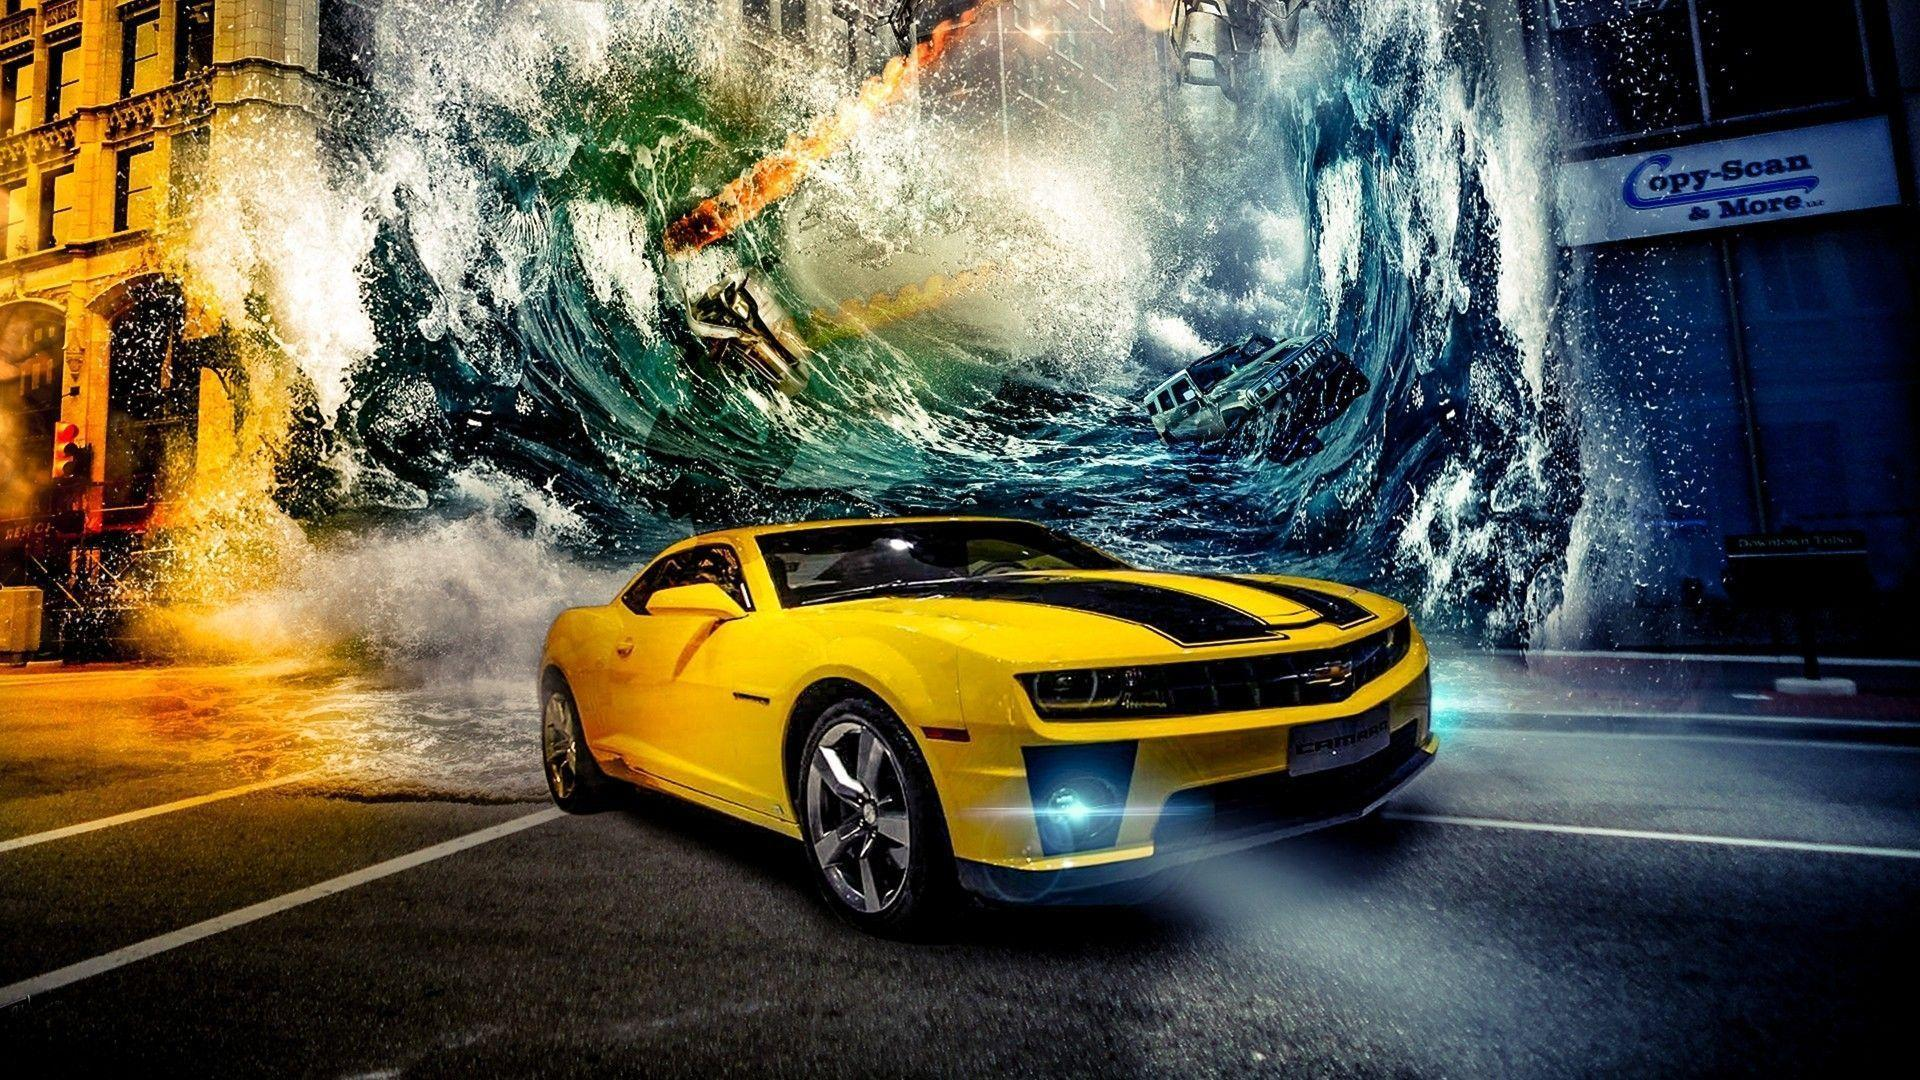 Bumblebee 2017 Wallpapers HD - Wallpaper Cave